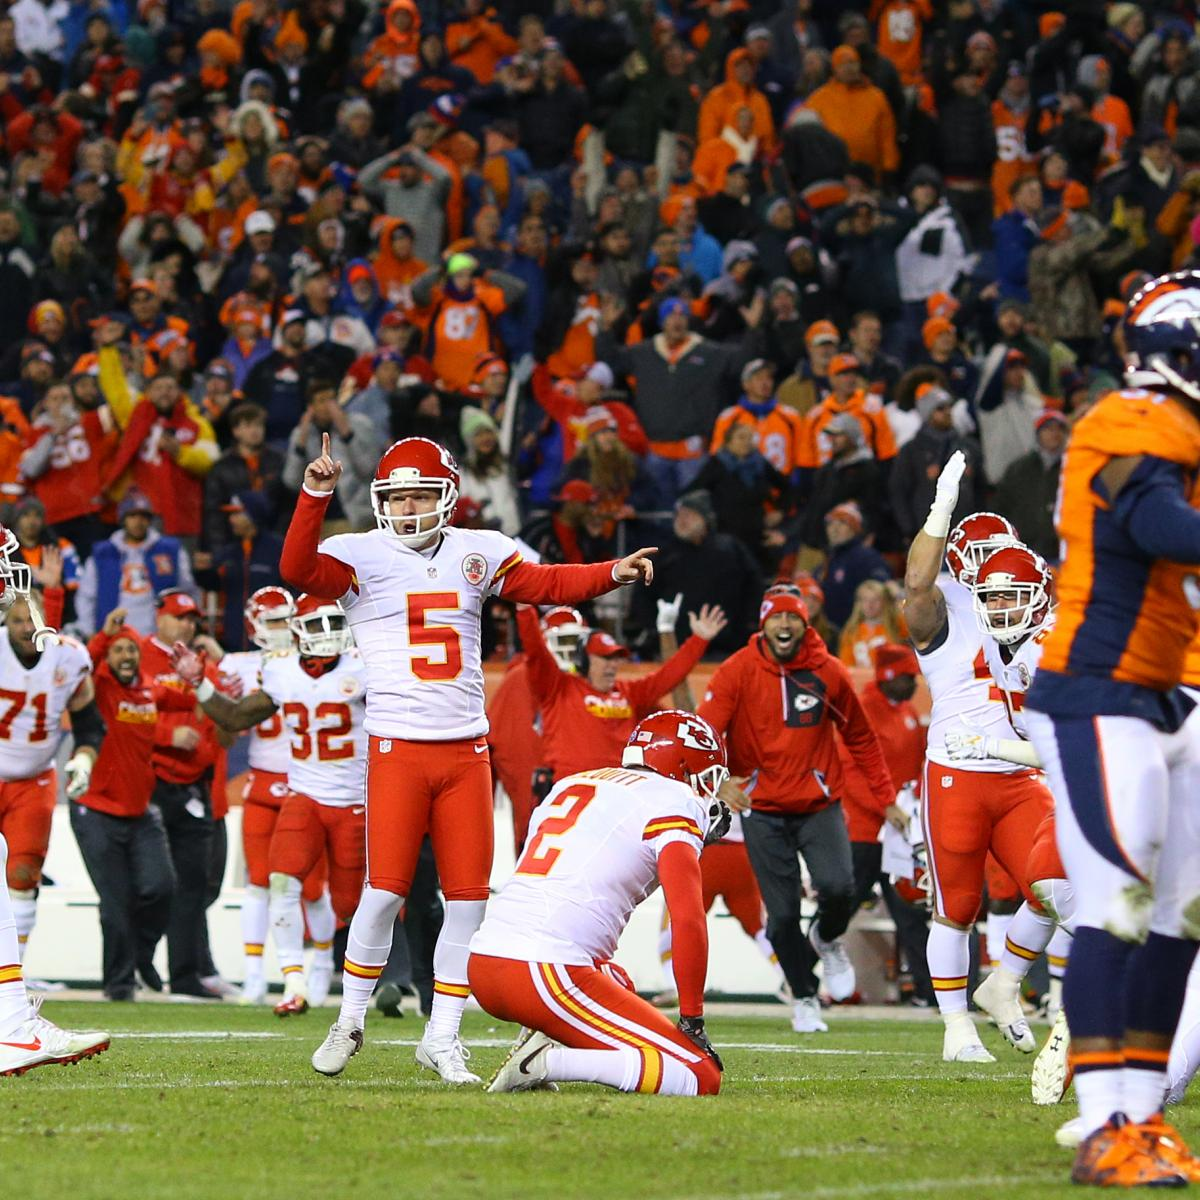 Chiefs Vs. Broncos: Score And Twitter Reaction For Sunday